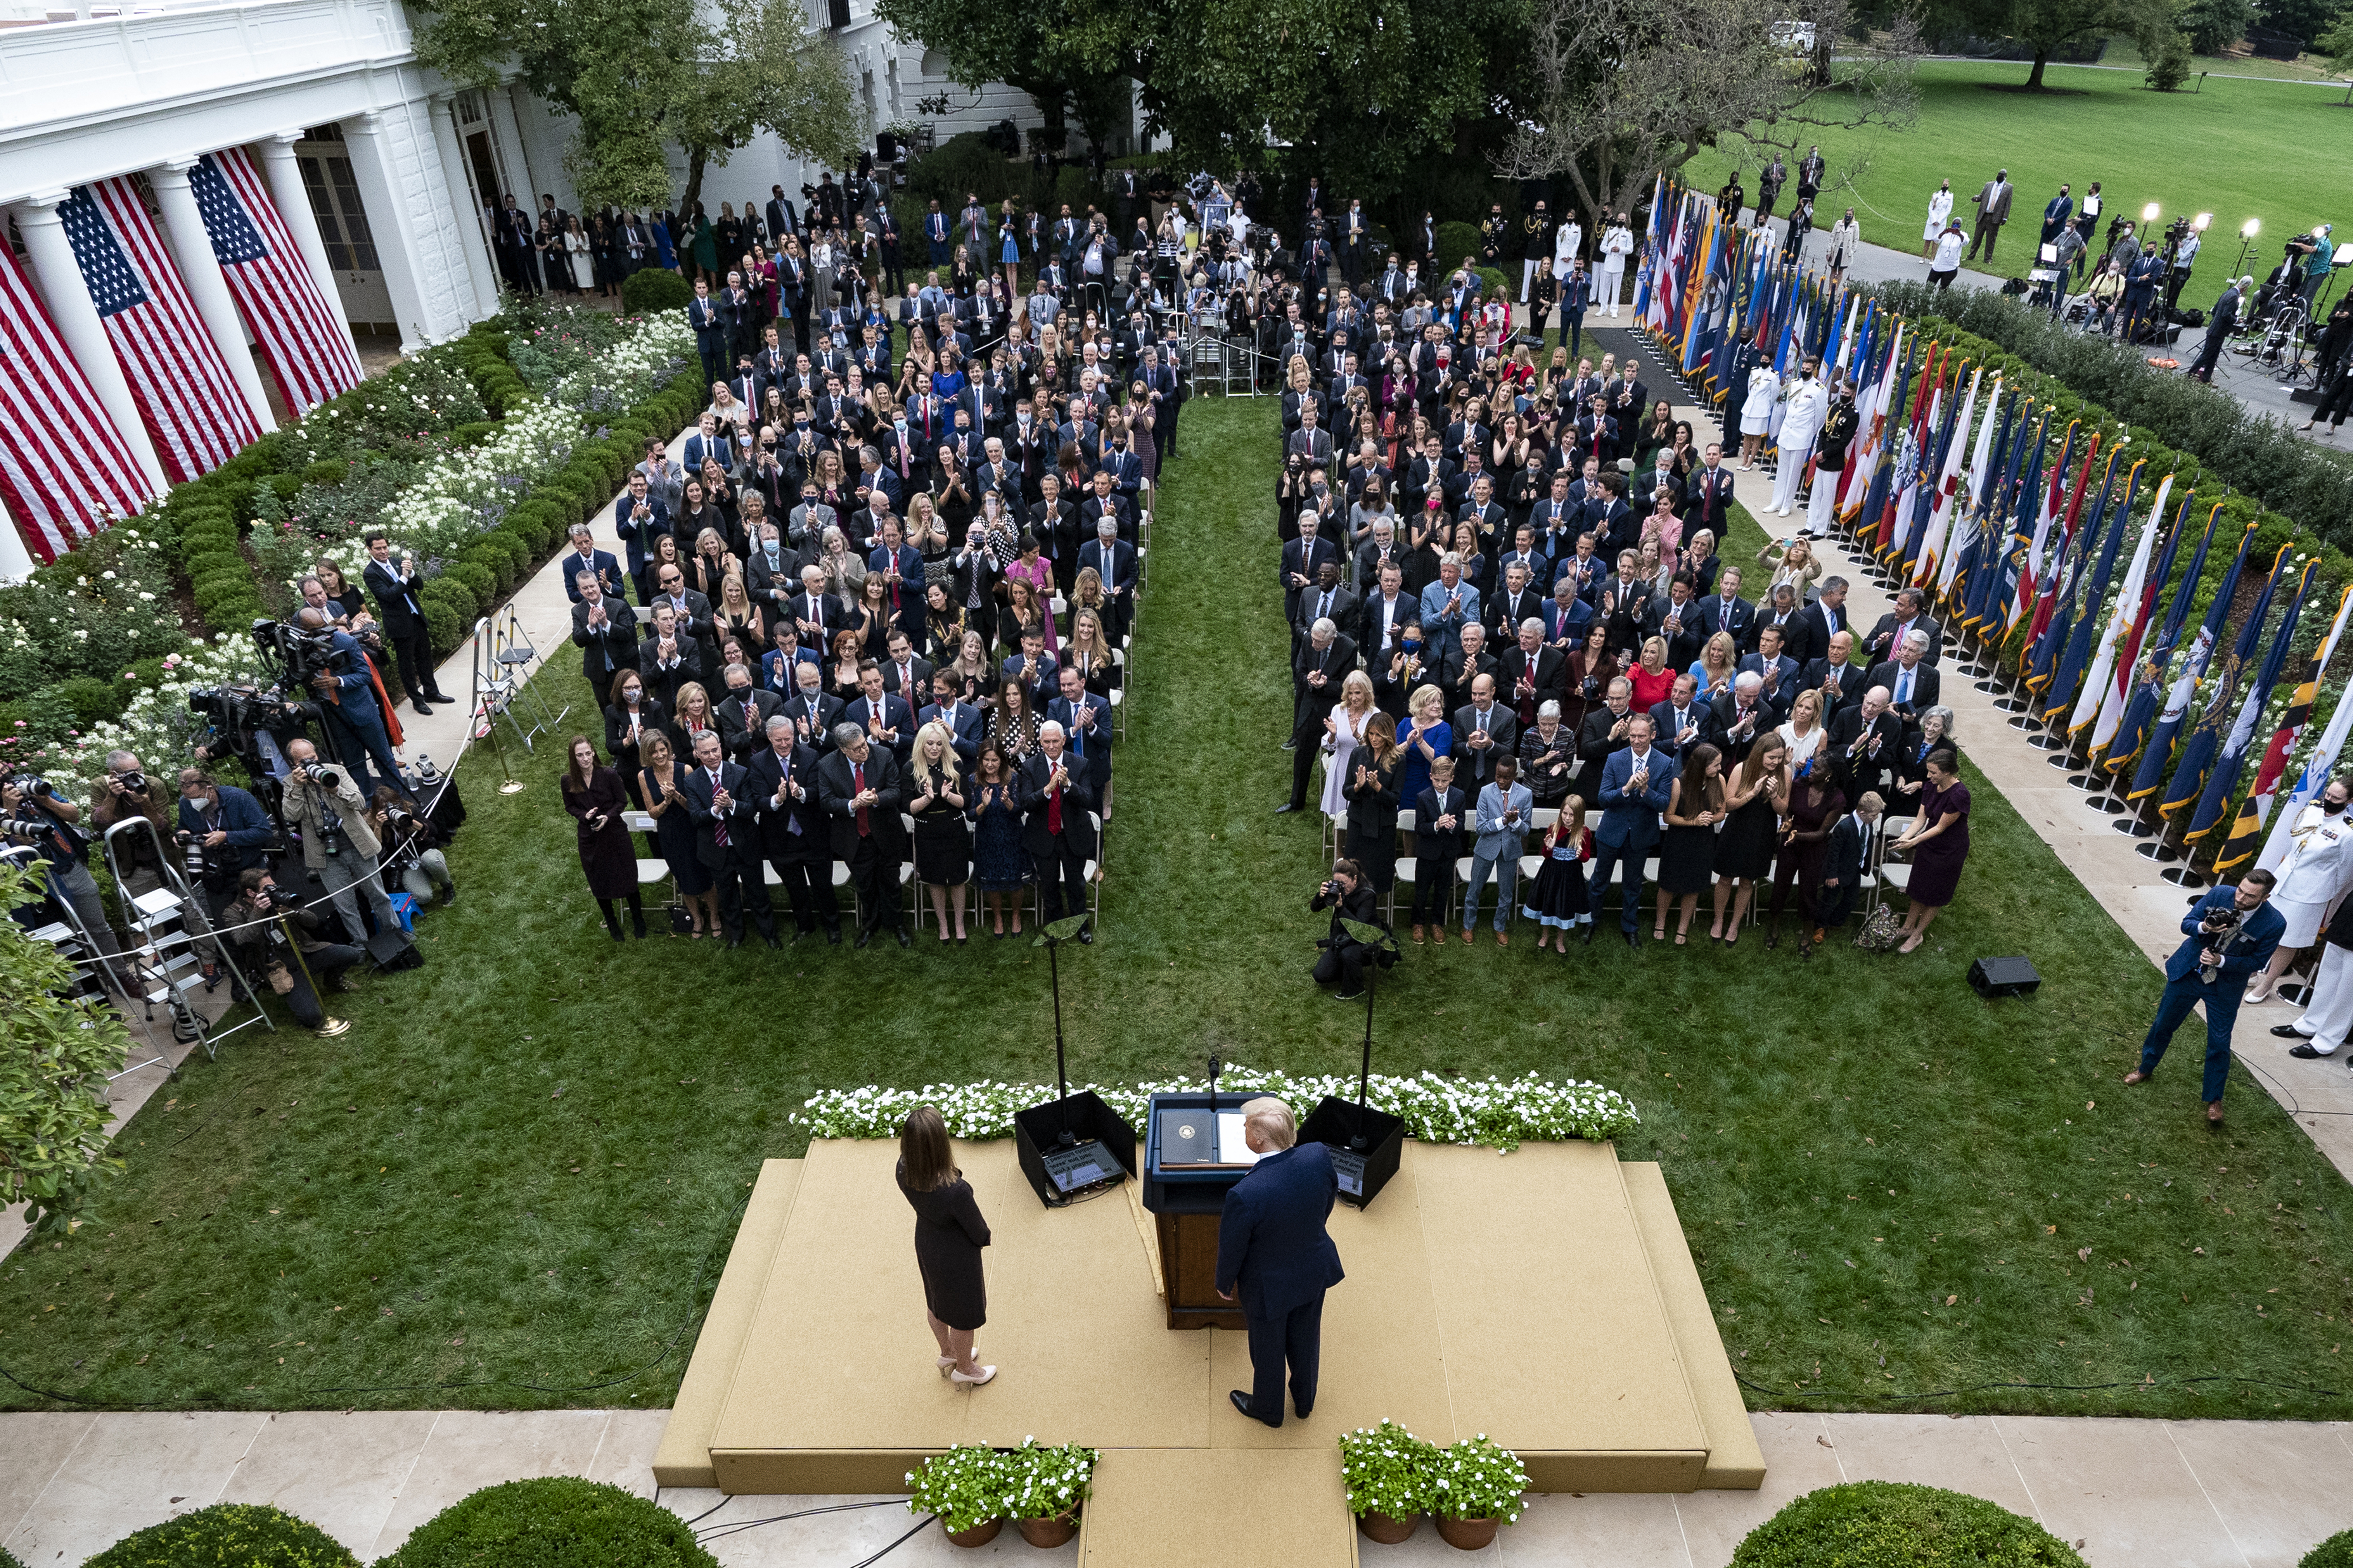 California Pastor Who Attended White House Rose Garden Event Says He Has Covid 19